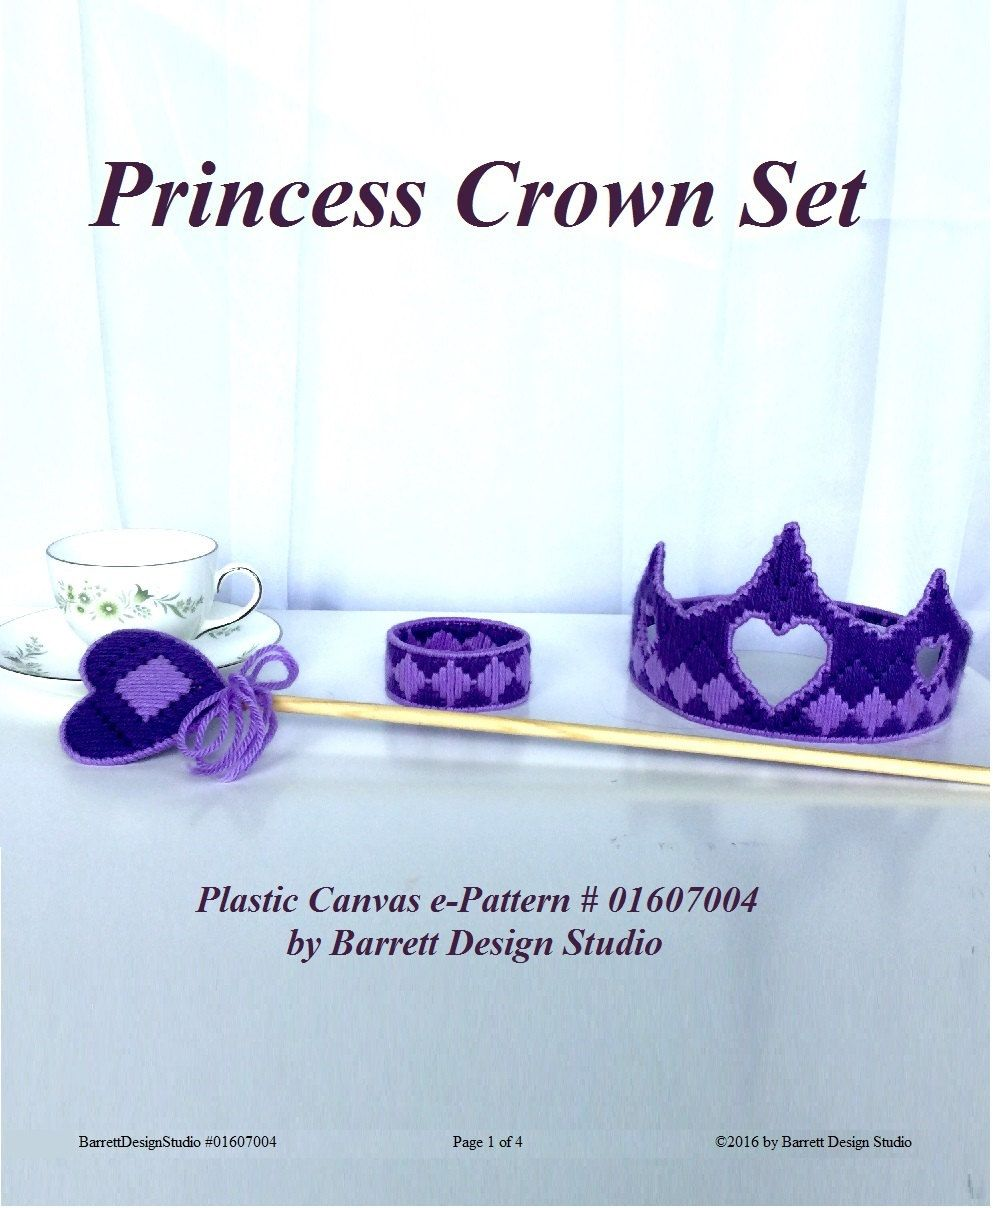 Plastic Canvas Pattern Pdf Princess Crown Purple Dressup Kids Play Queen Royal Magic Wand Scept Plastic Canvas Patterns Plastic Canvas Plastic Canvas Christmas